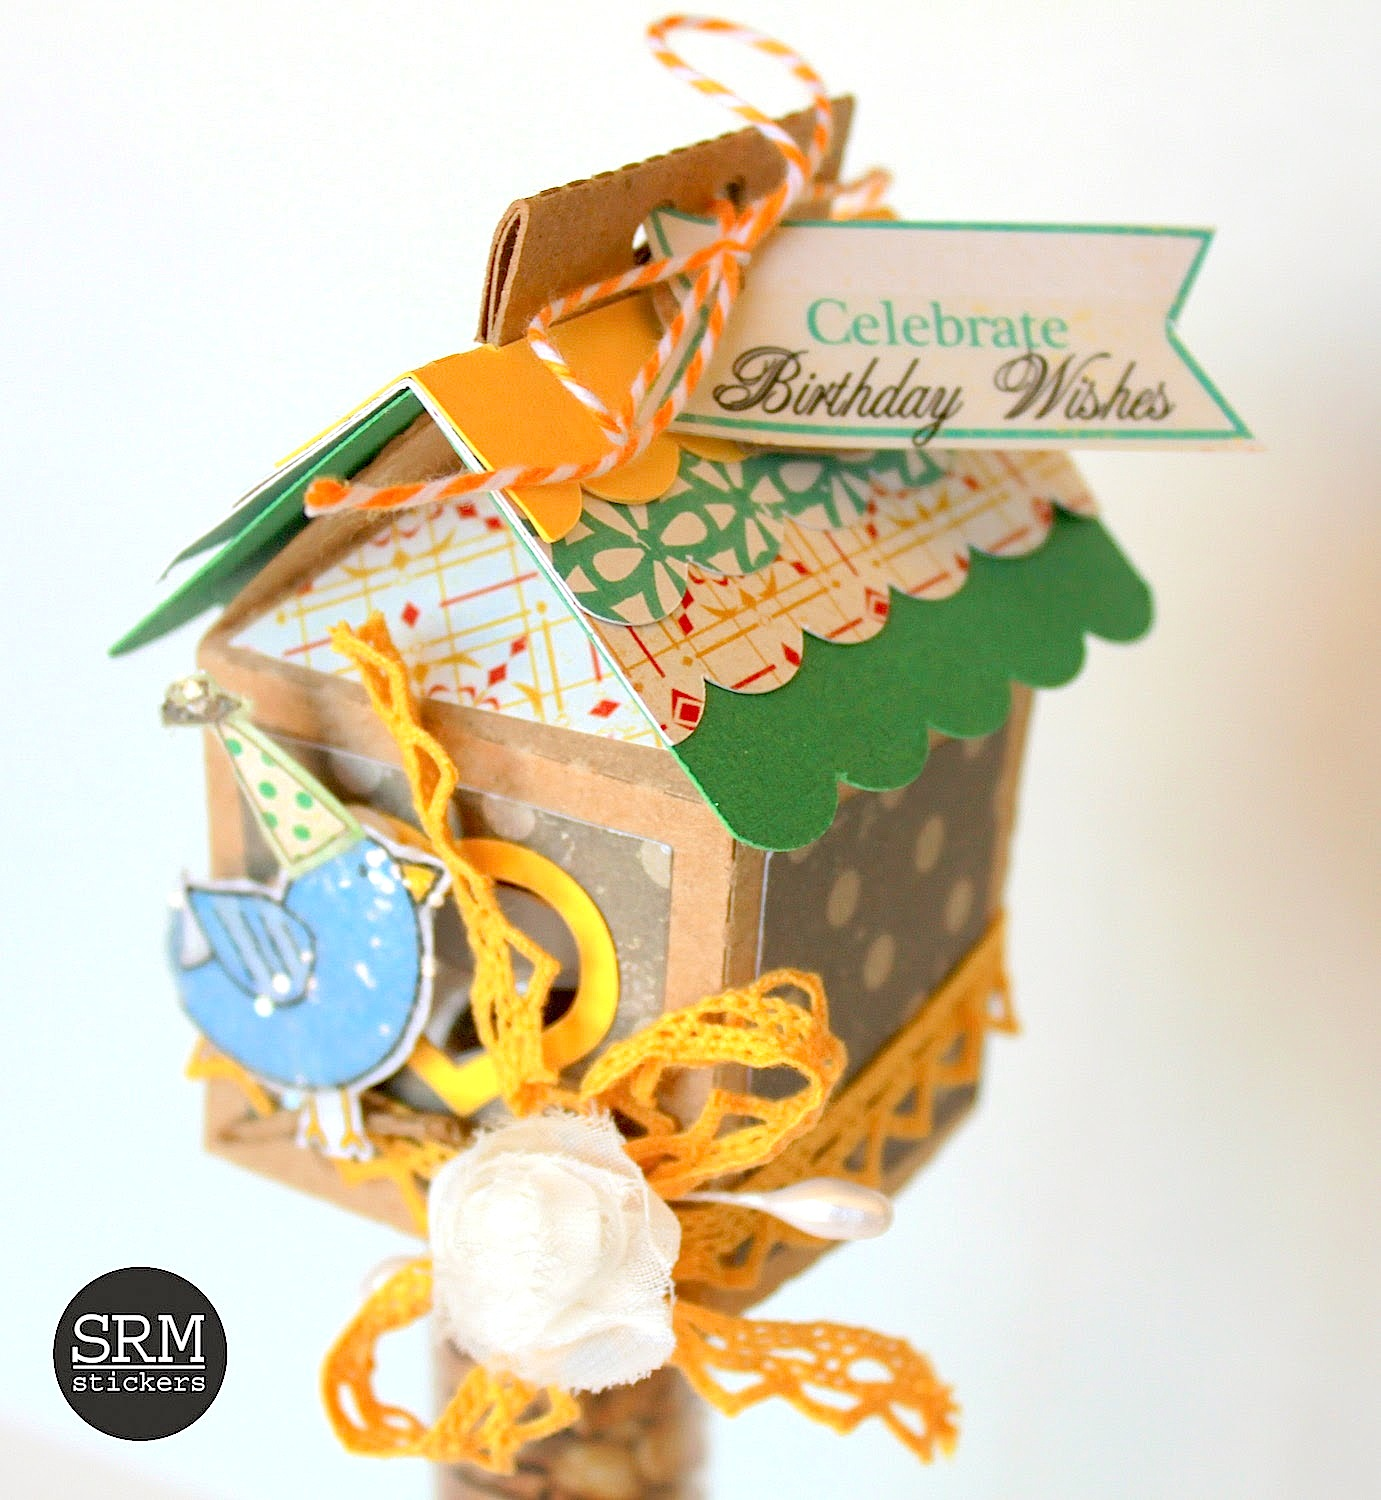 SRM Stickers Blog - Birthday Bird House Tube by Shantaie - #tube #altered #birthday #stickers #fancy #mixed media #favors #twine #silhouette